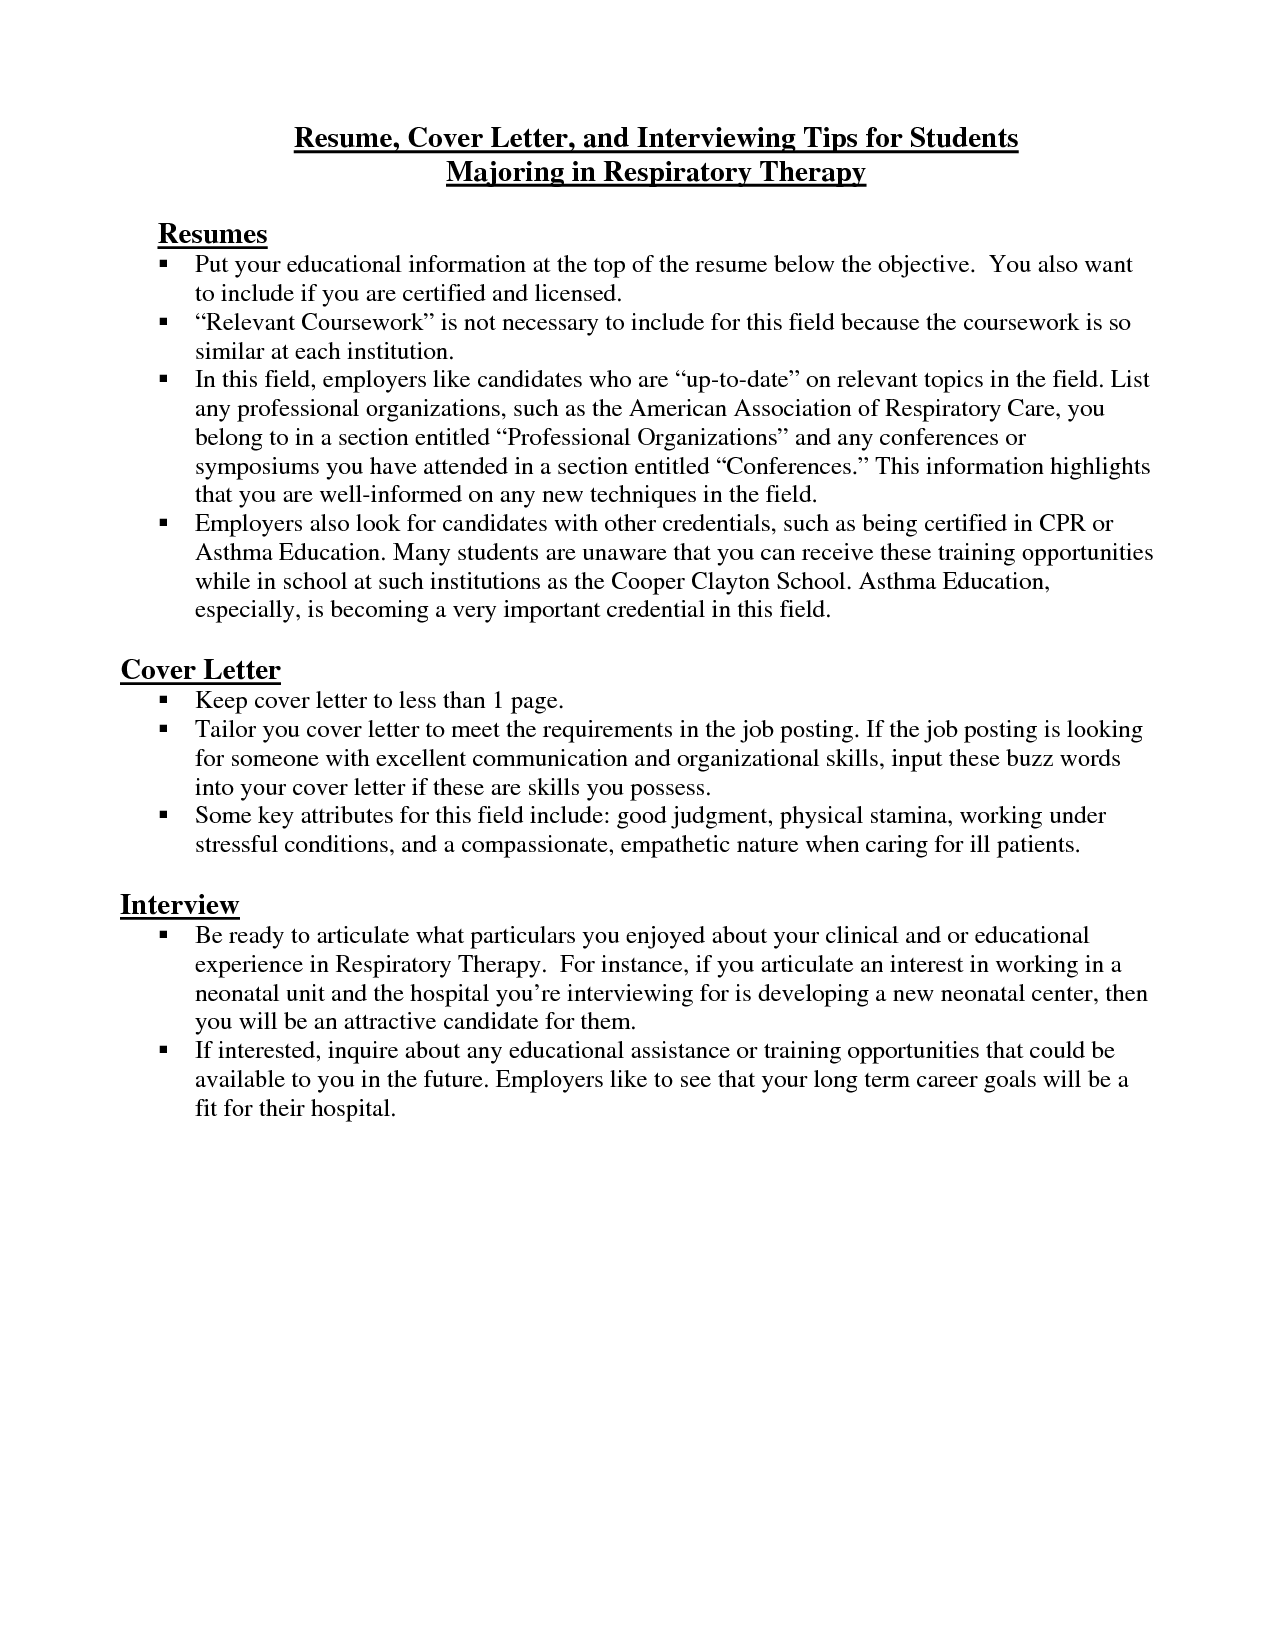 New Cover Letter For Therapist Job You Can Download Full Resume Template